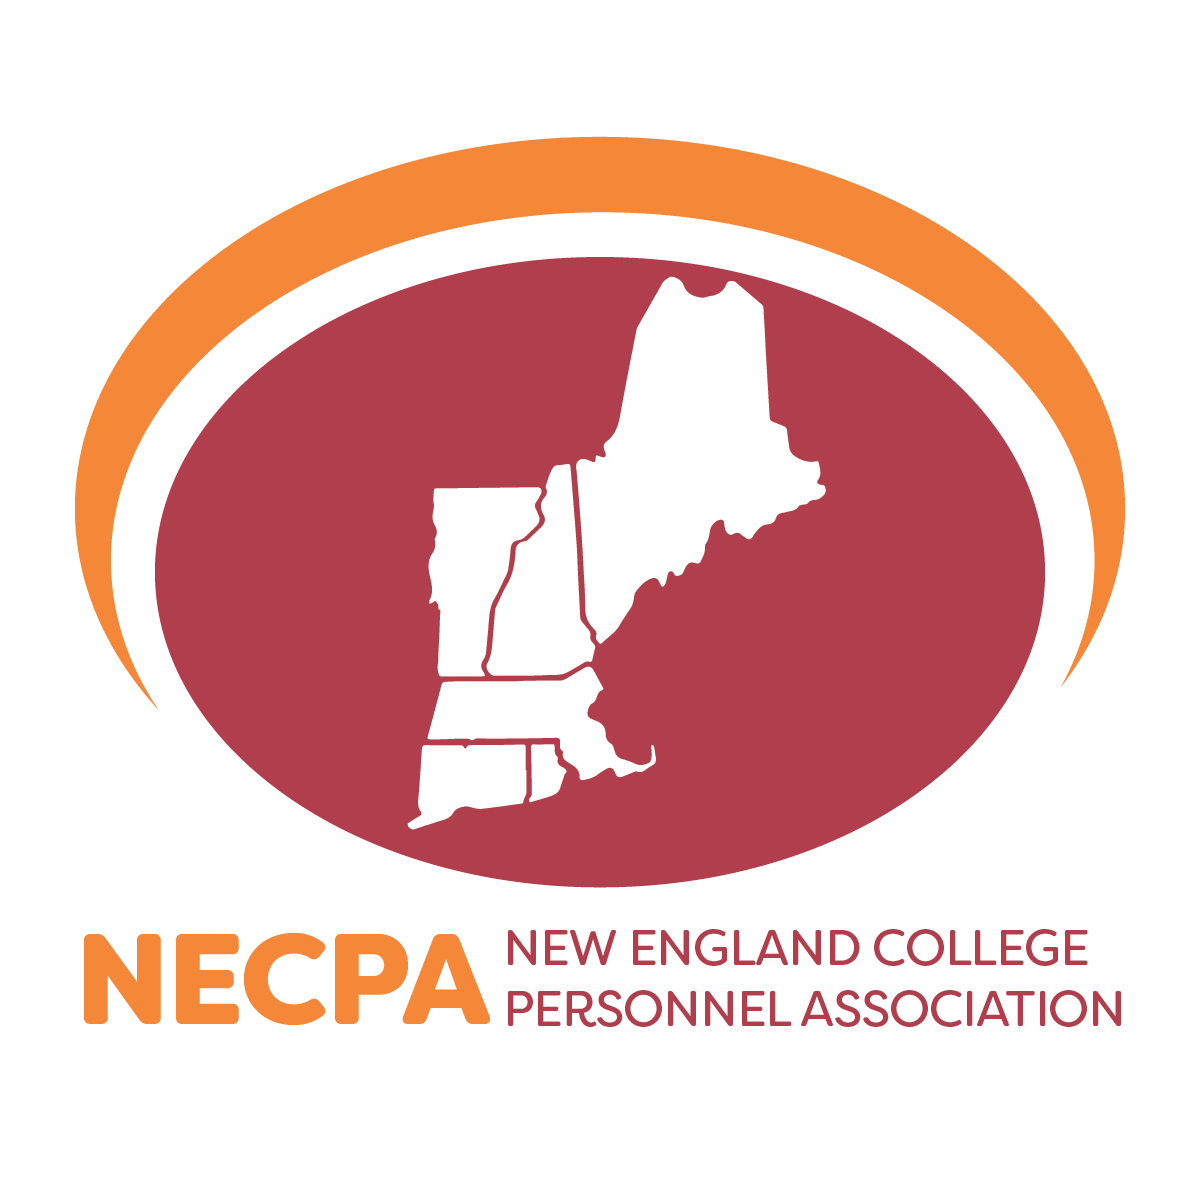 NECPA logo featuring the outlines of New England states